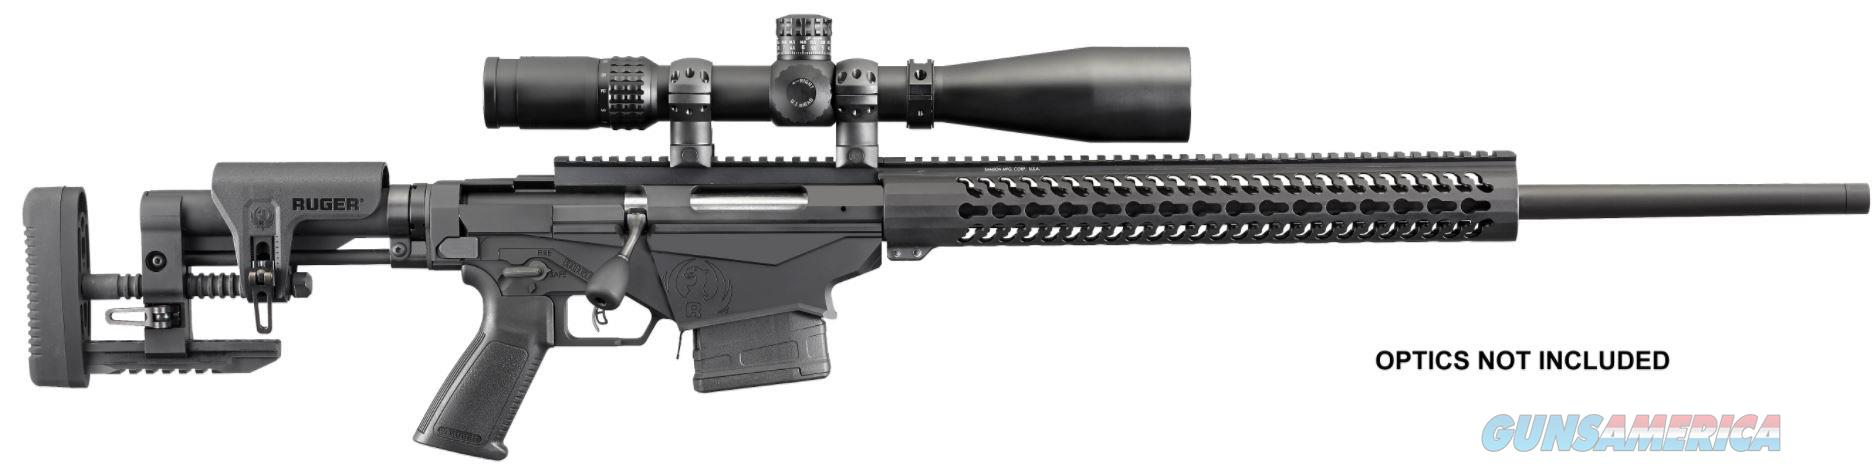 """Ruger Precision Rifle .308 20"""" 10+1 Folding Adjustable Stock - New in Box  Guns > Rifles > Ruger Rifles > Precision Rifle Series"""